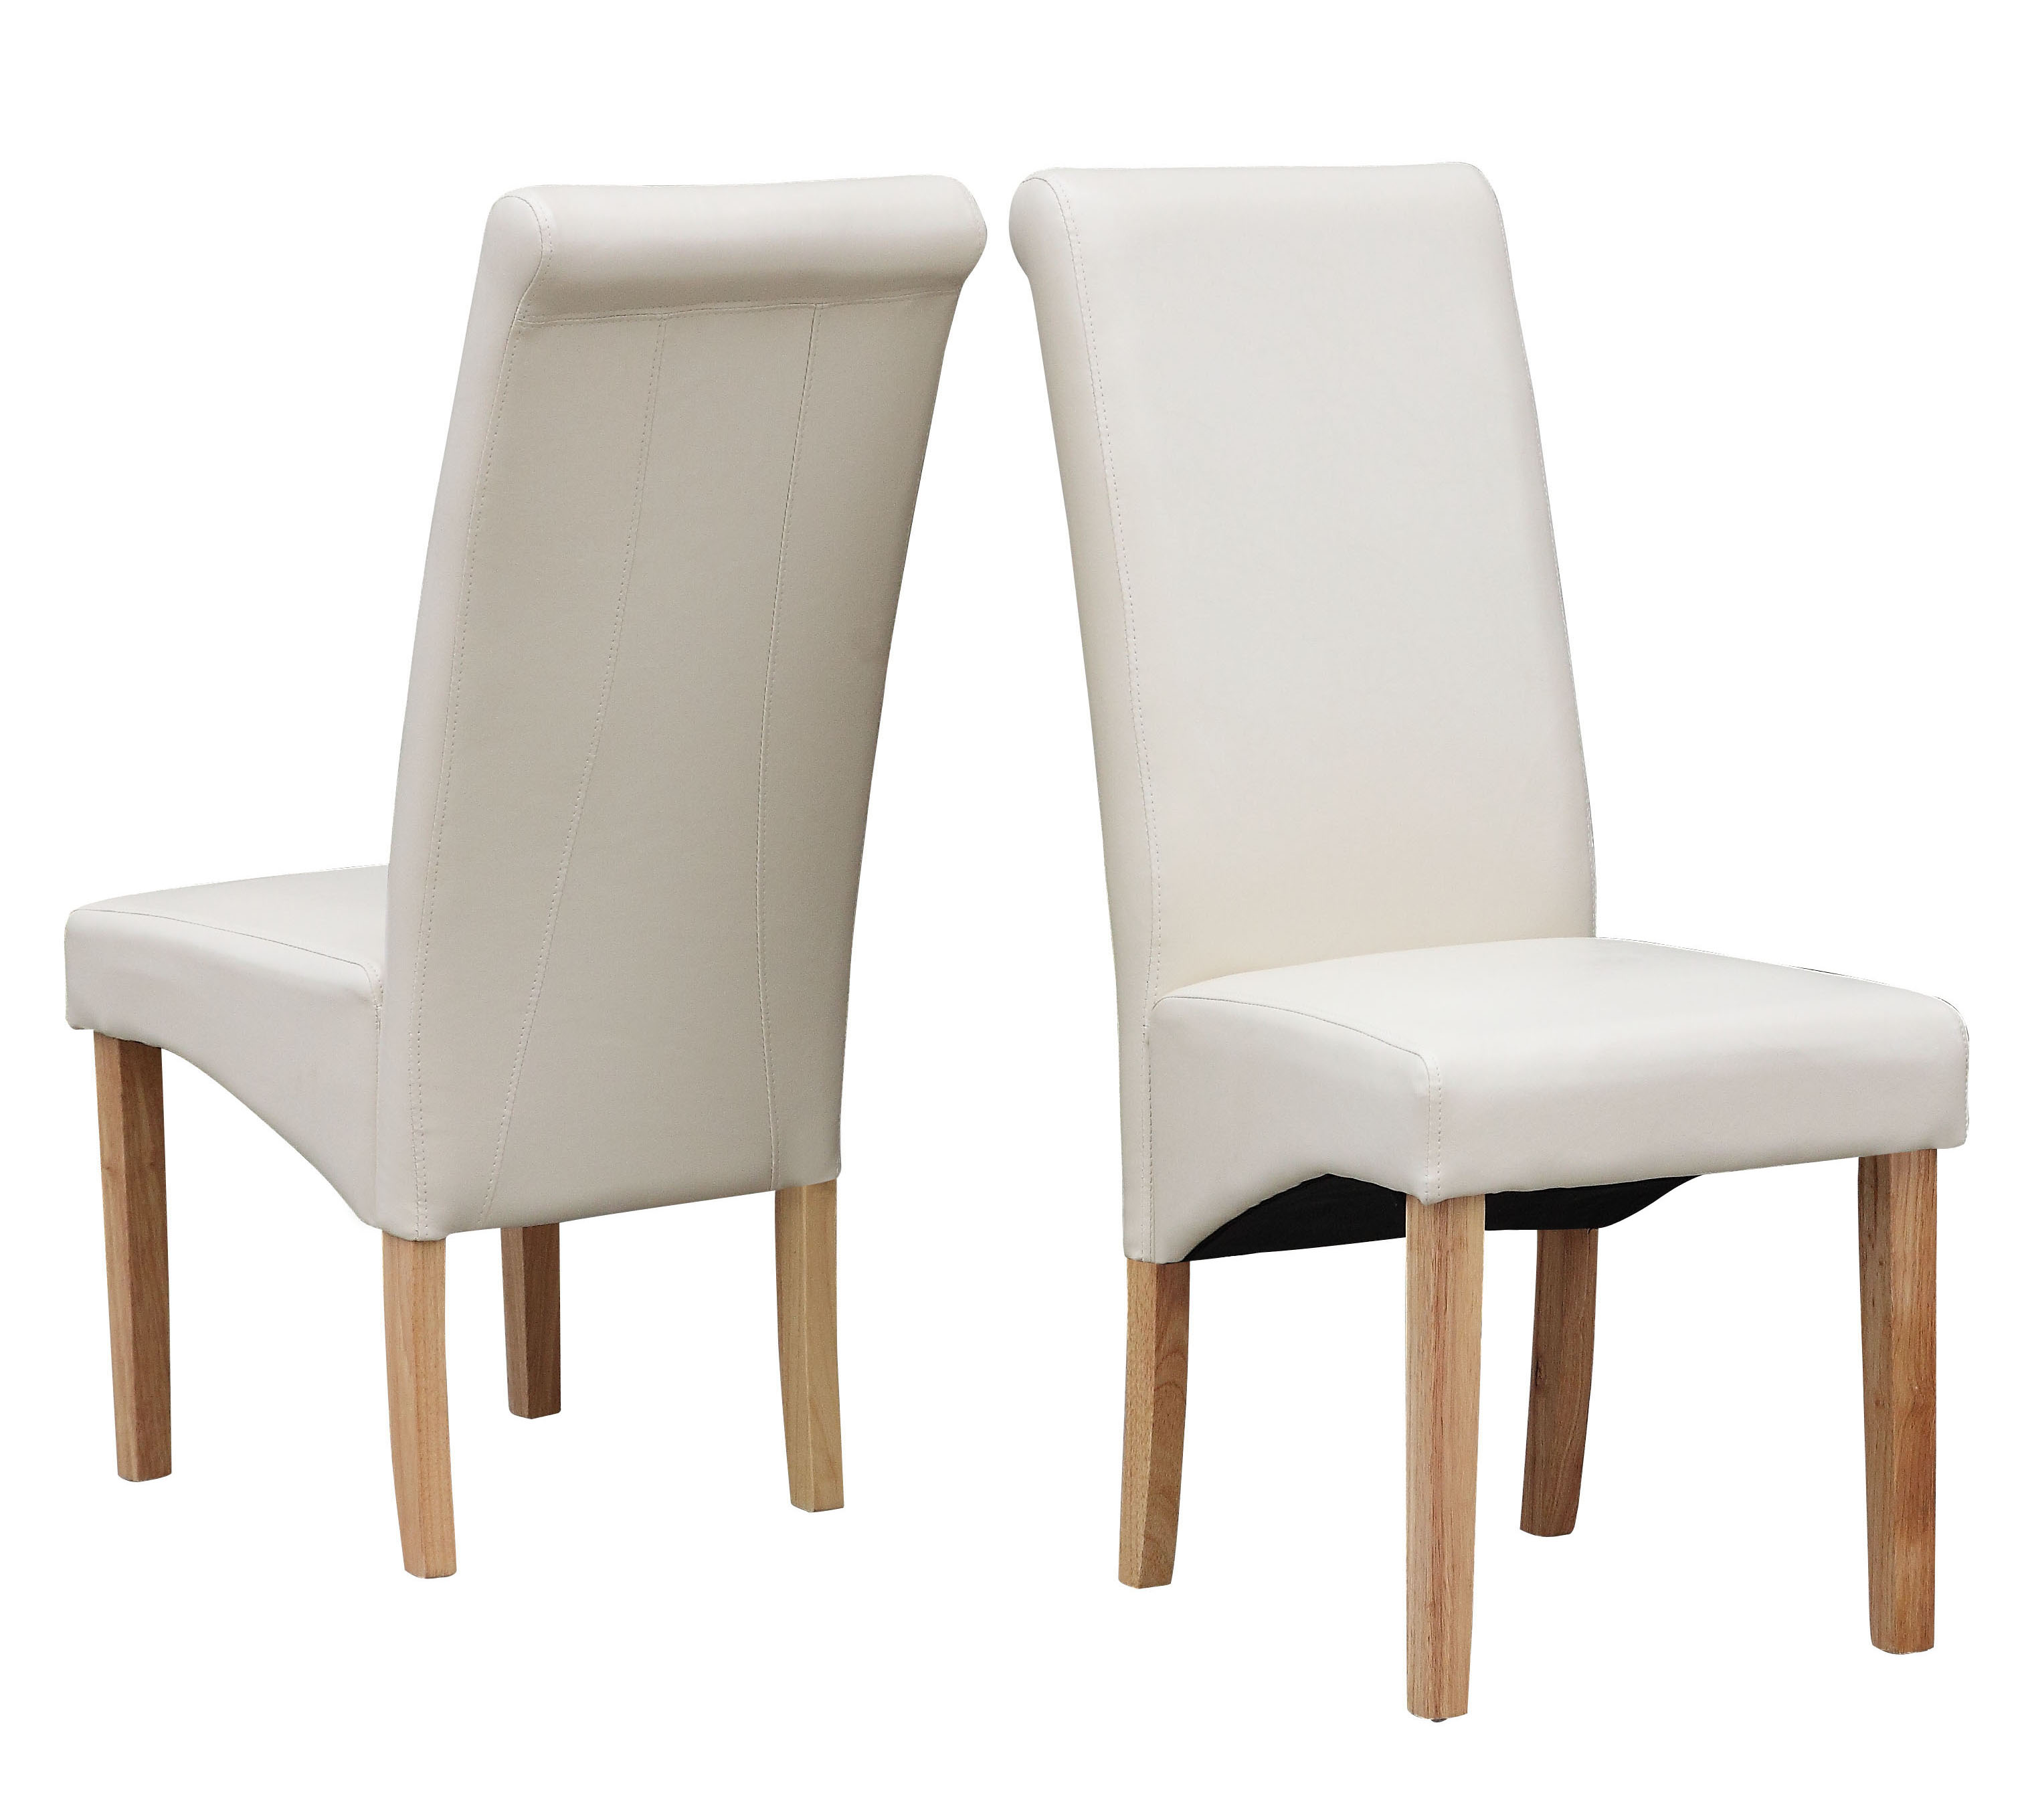 Dining Room High Chairs: Cream Modern Dining Room Chair Faux Leather Roll Top